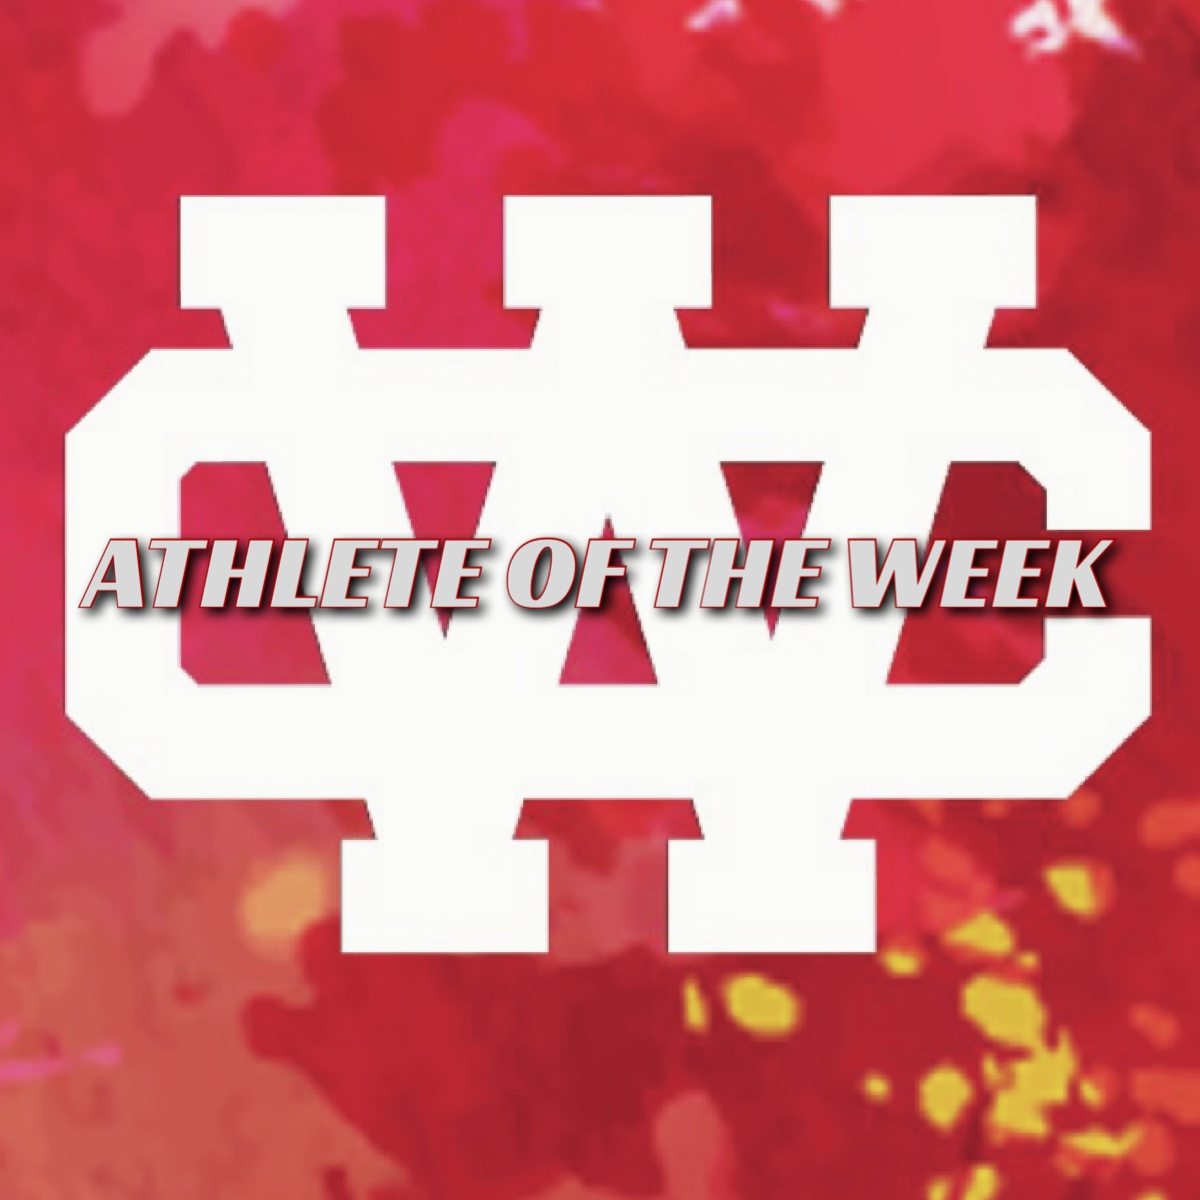 Herald Athletes of the Week for THE PAST TWO WEEKS!